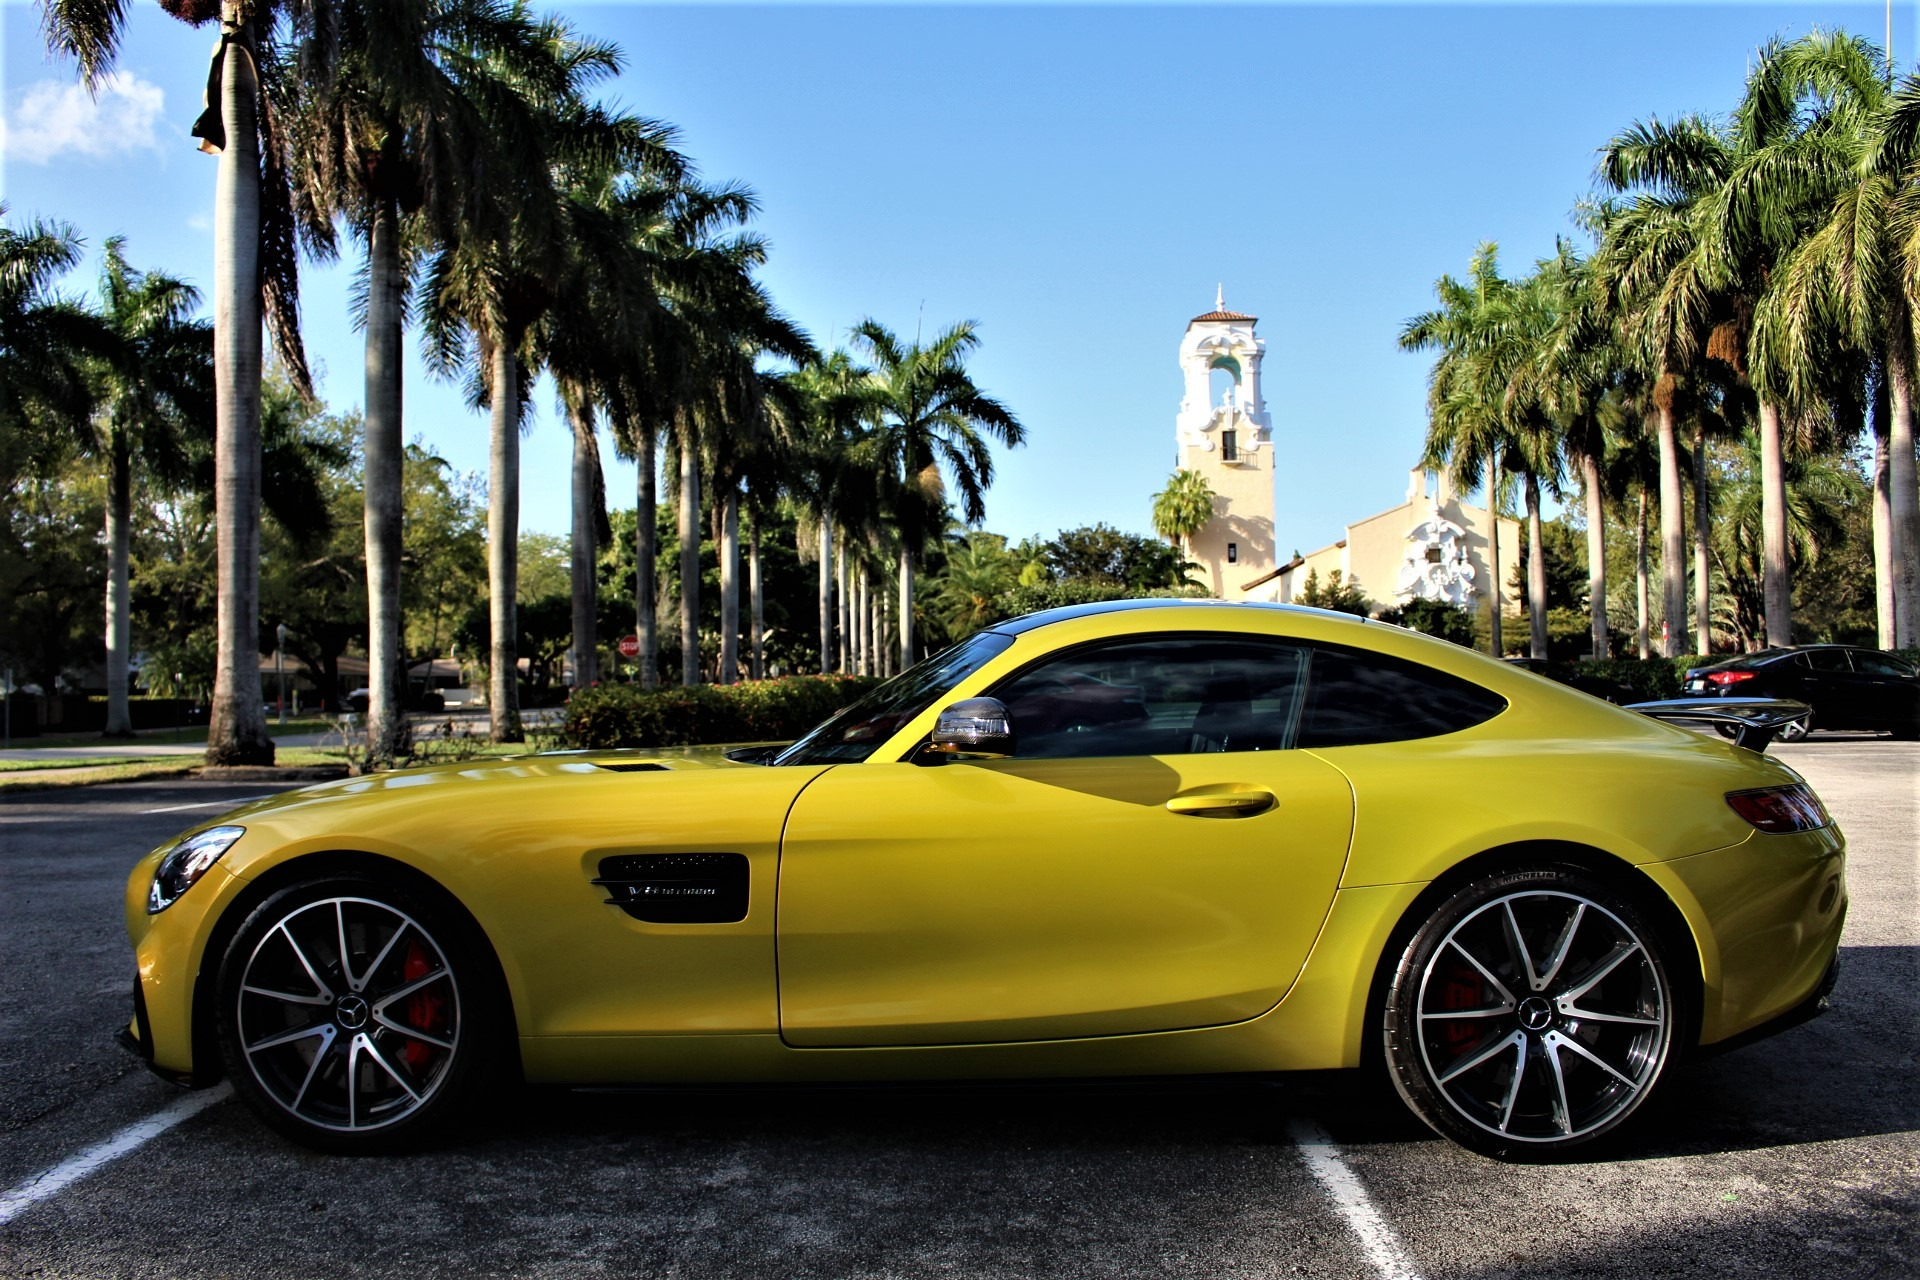 Used 2016 Mercedes-Benz AMG GT S for sale Sold at The Gables Sports Cars in Miami FL 33146 3